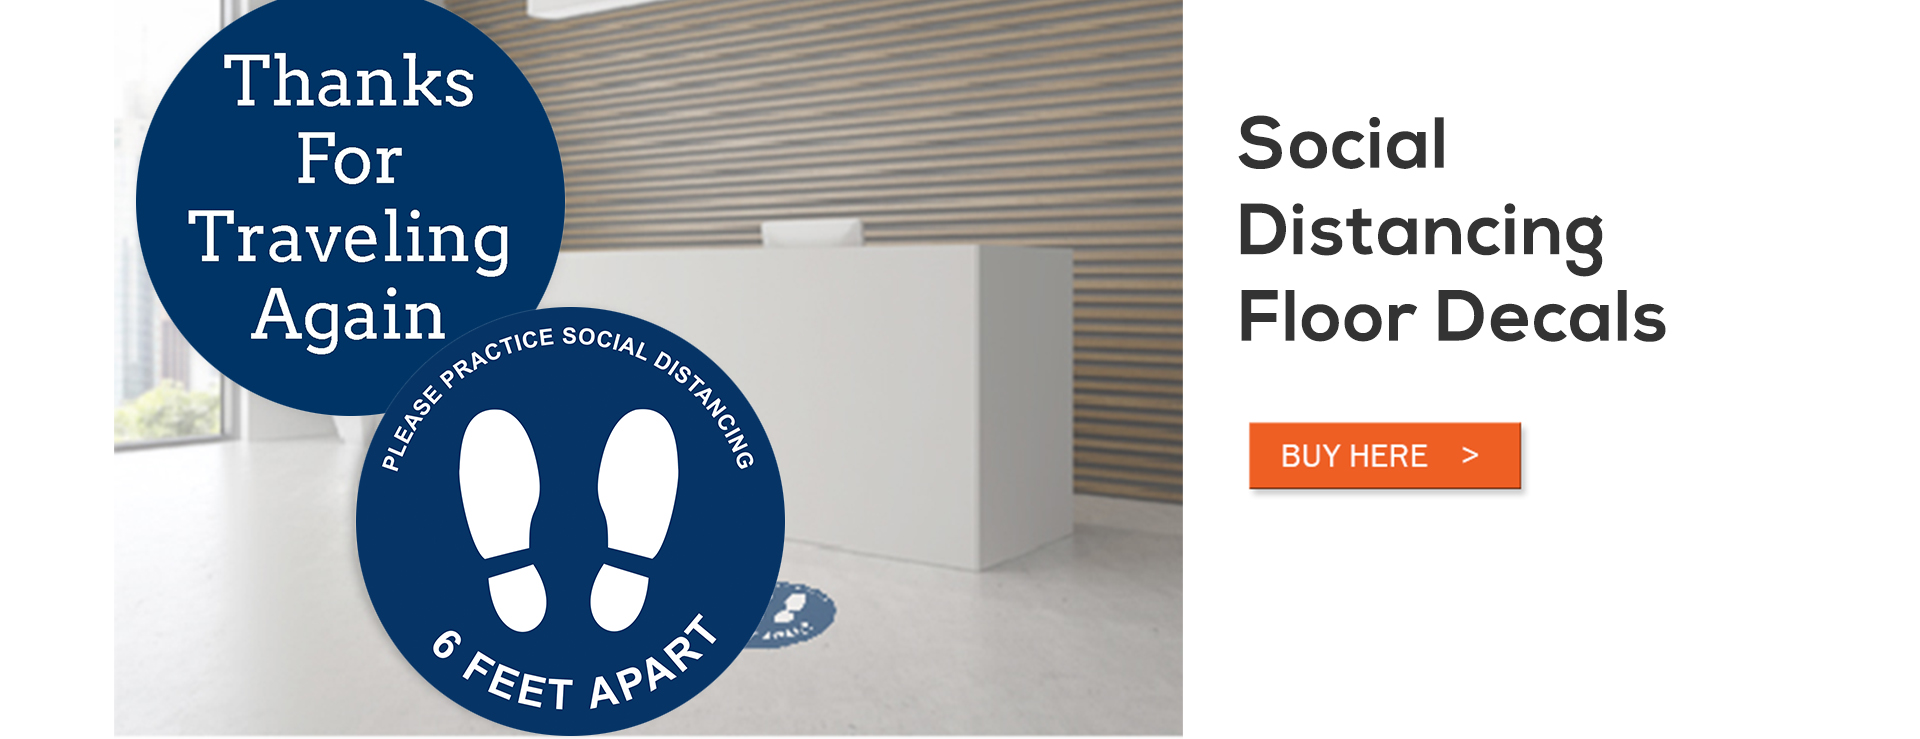 Social Distancing Floor Decals